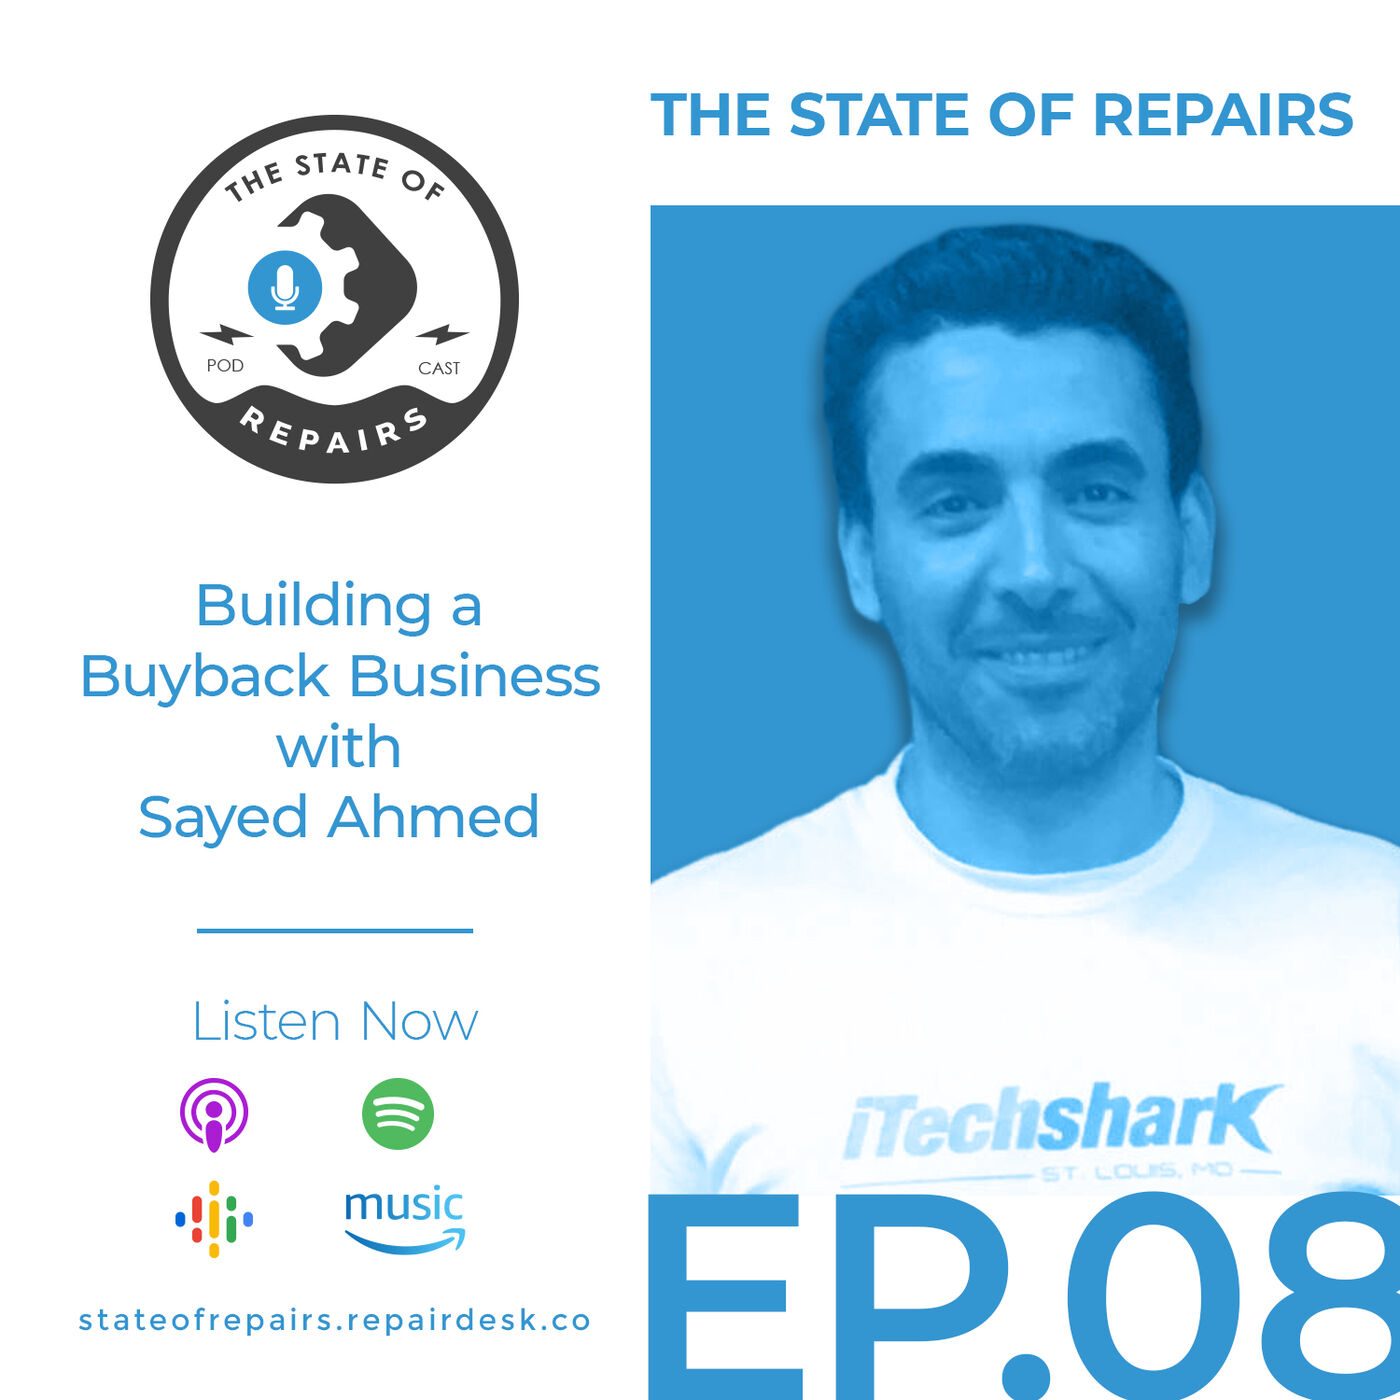 Episode 8 - Building a Buyback Business with Sayed Ahmed